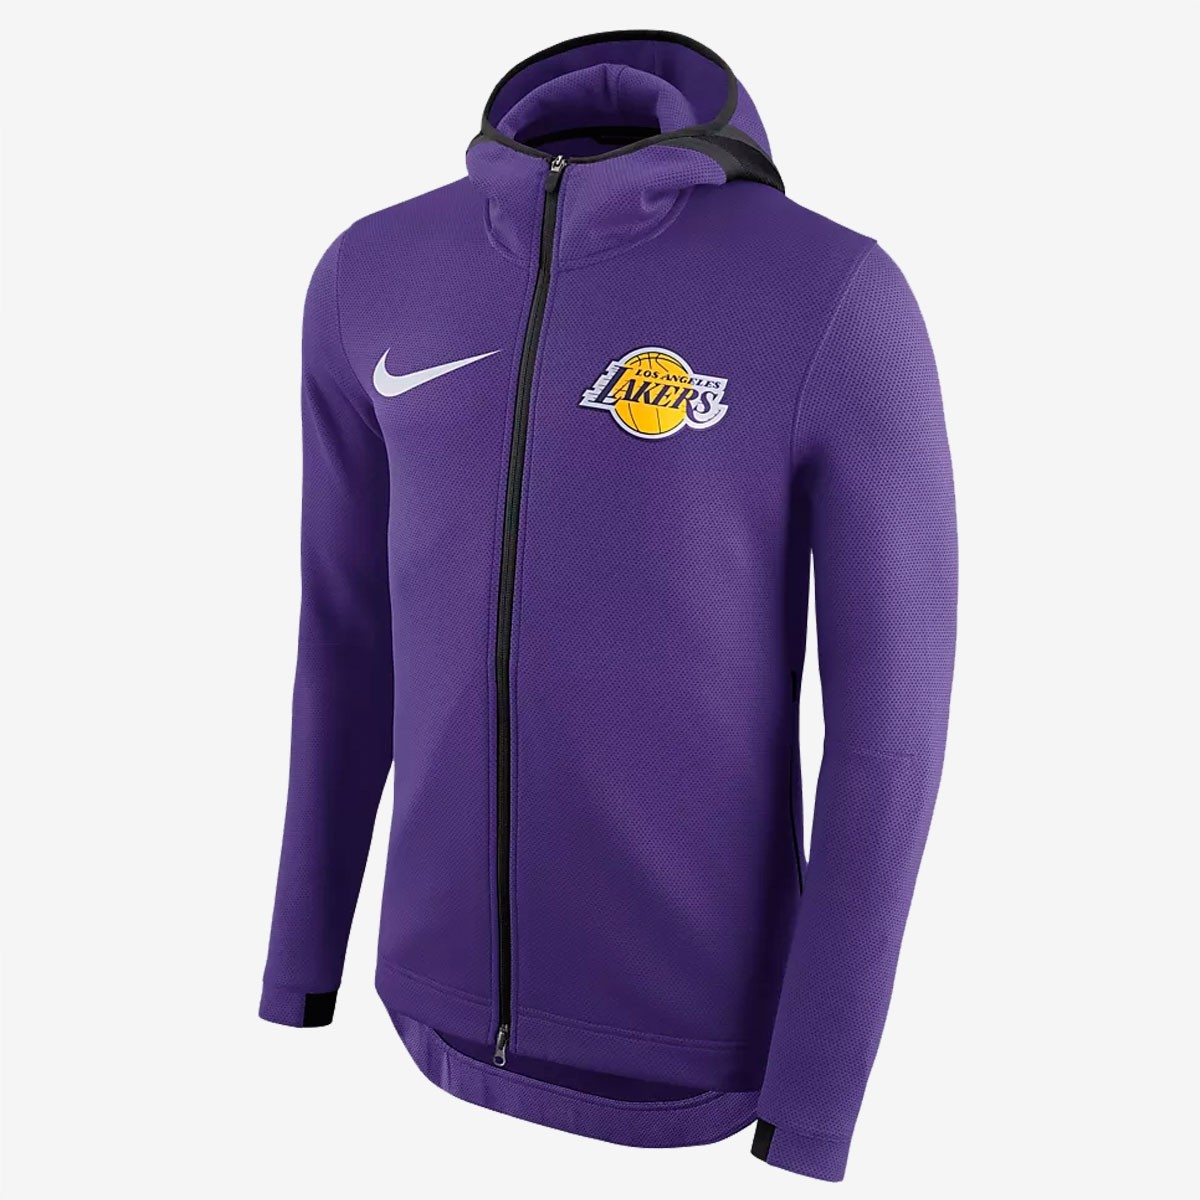 Nike Therma Flex Showtime Lakers